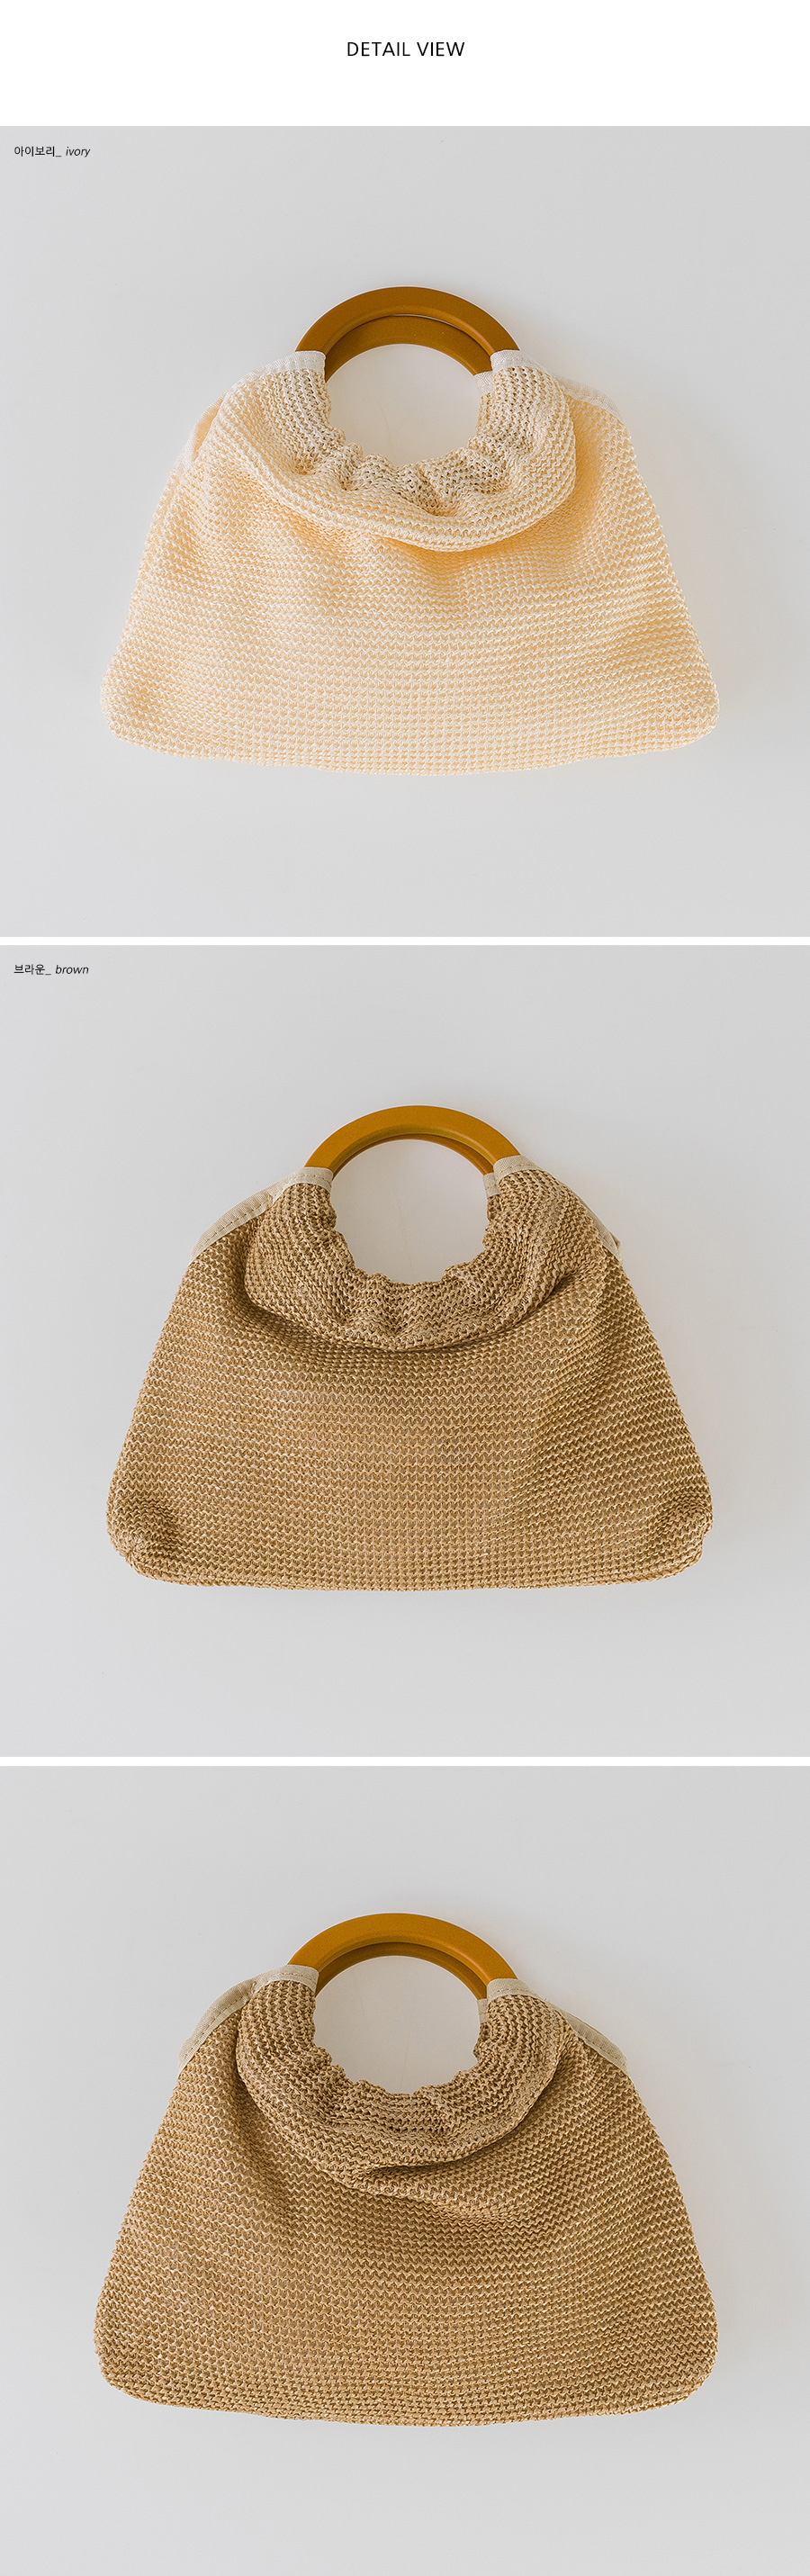 strap point tote bag